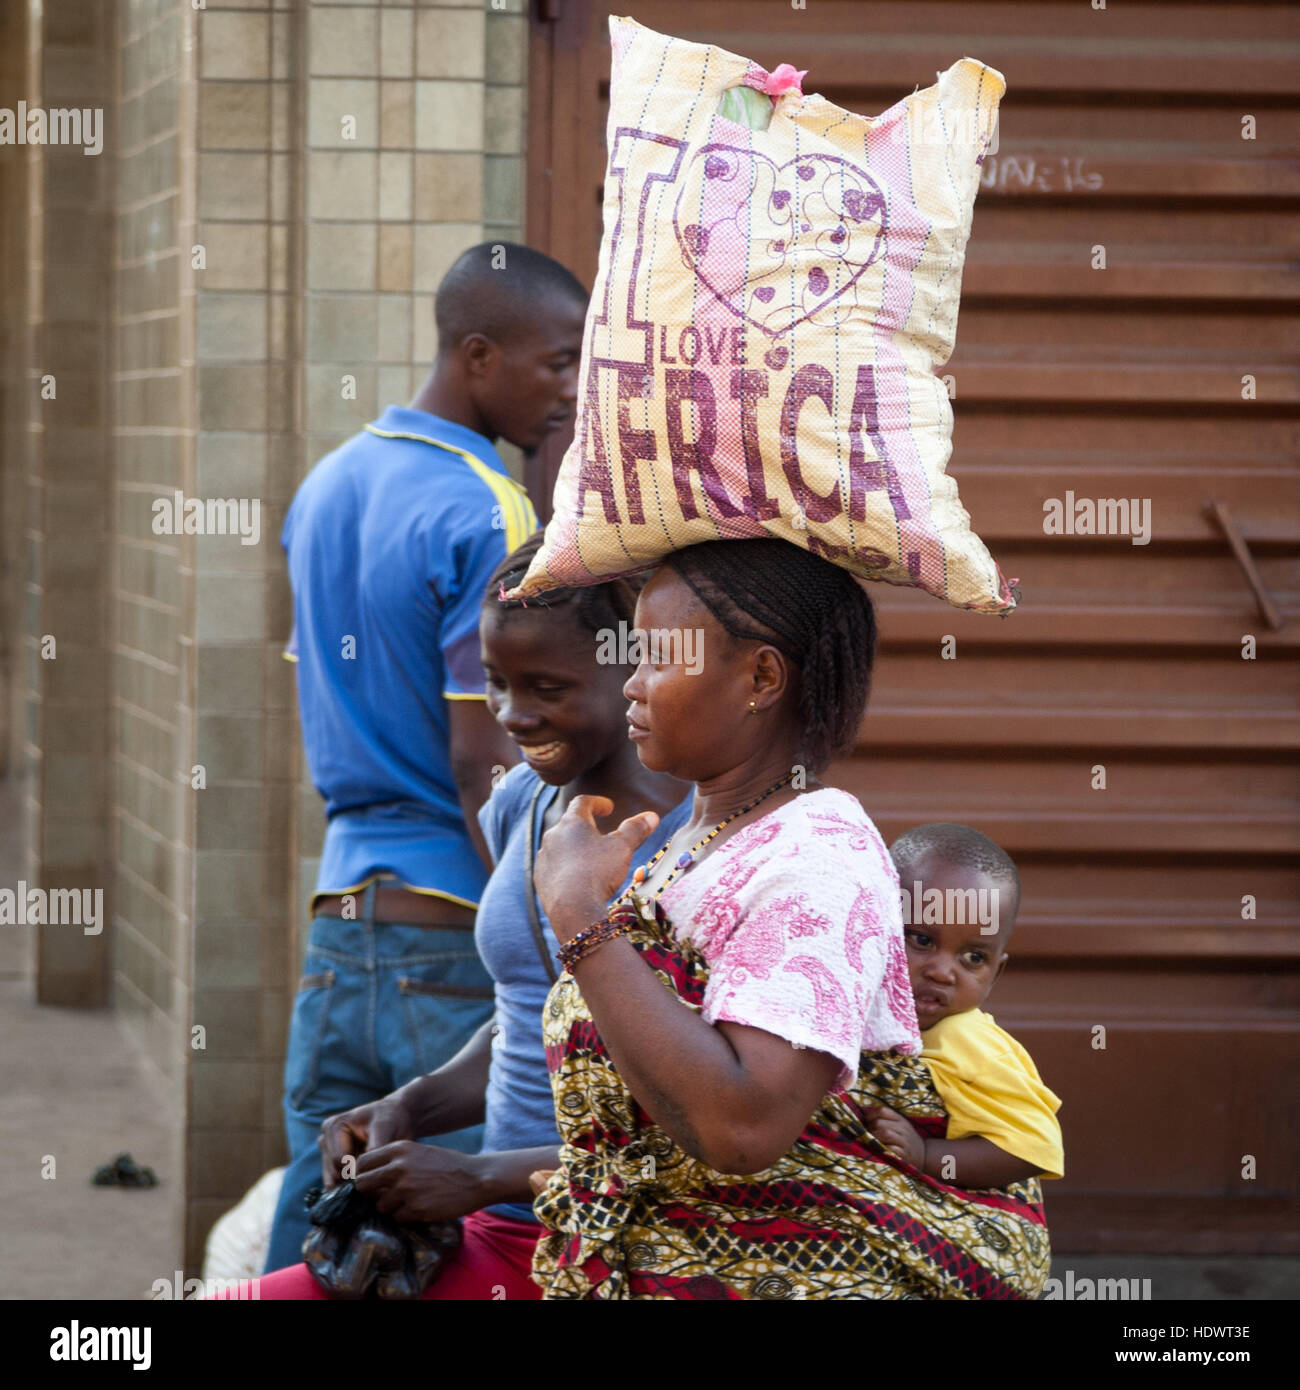 """""""I love Africa"""" - Woman carrying bag with inscription on her head and baby on her back Stock Photo"""